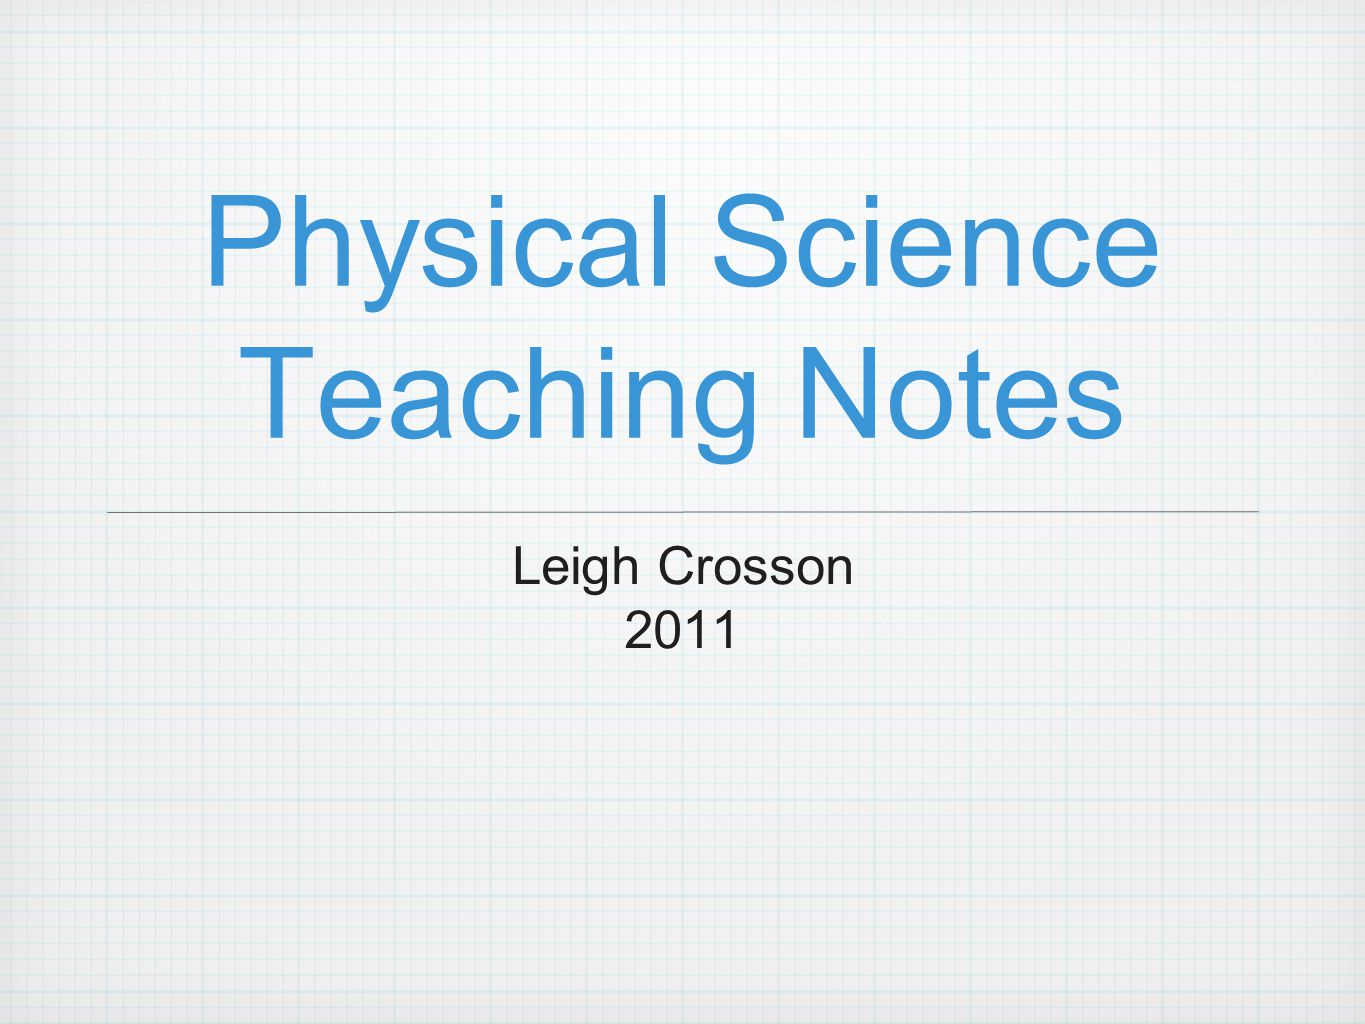 Physical Science Teaching Notes